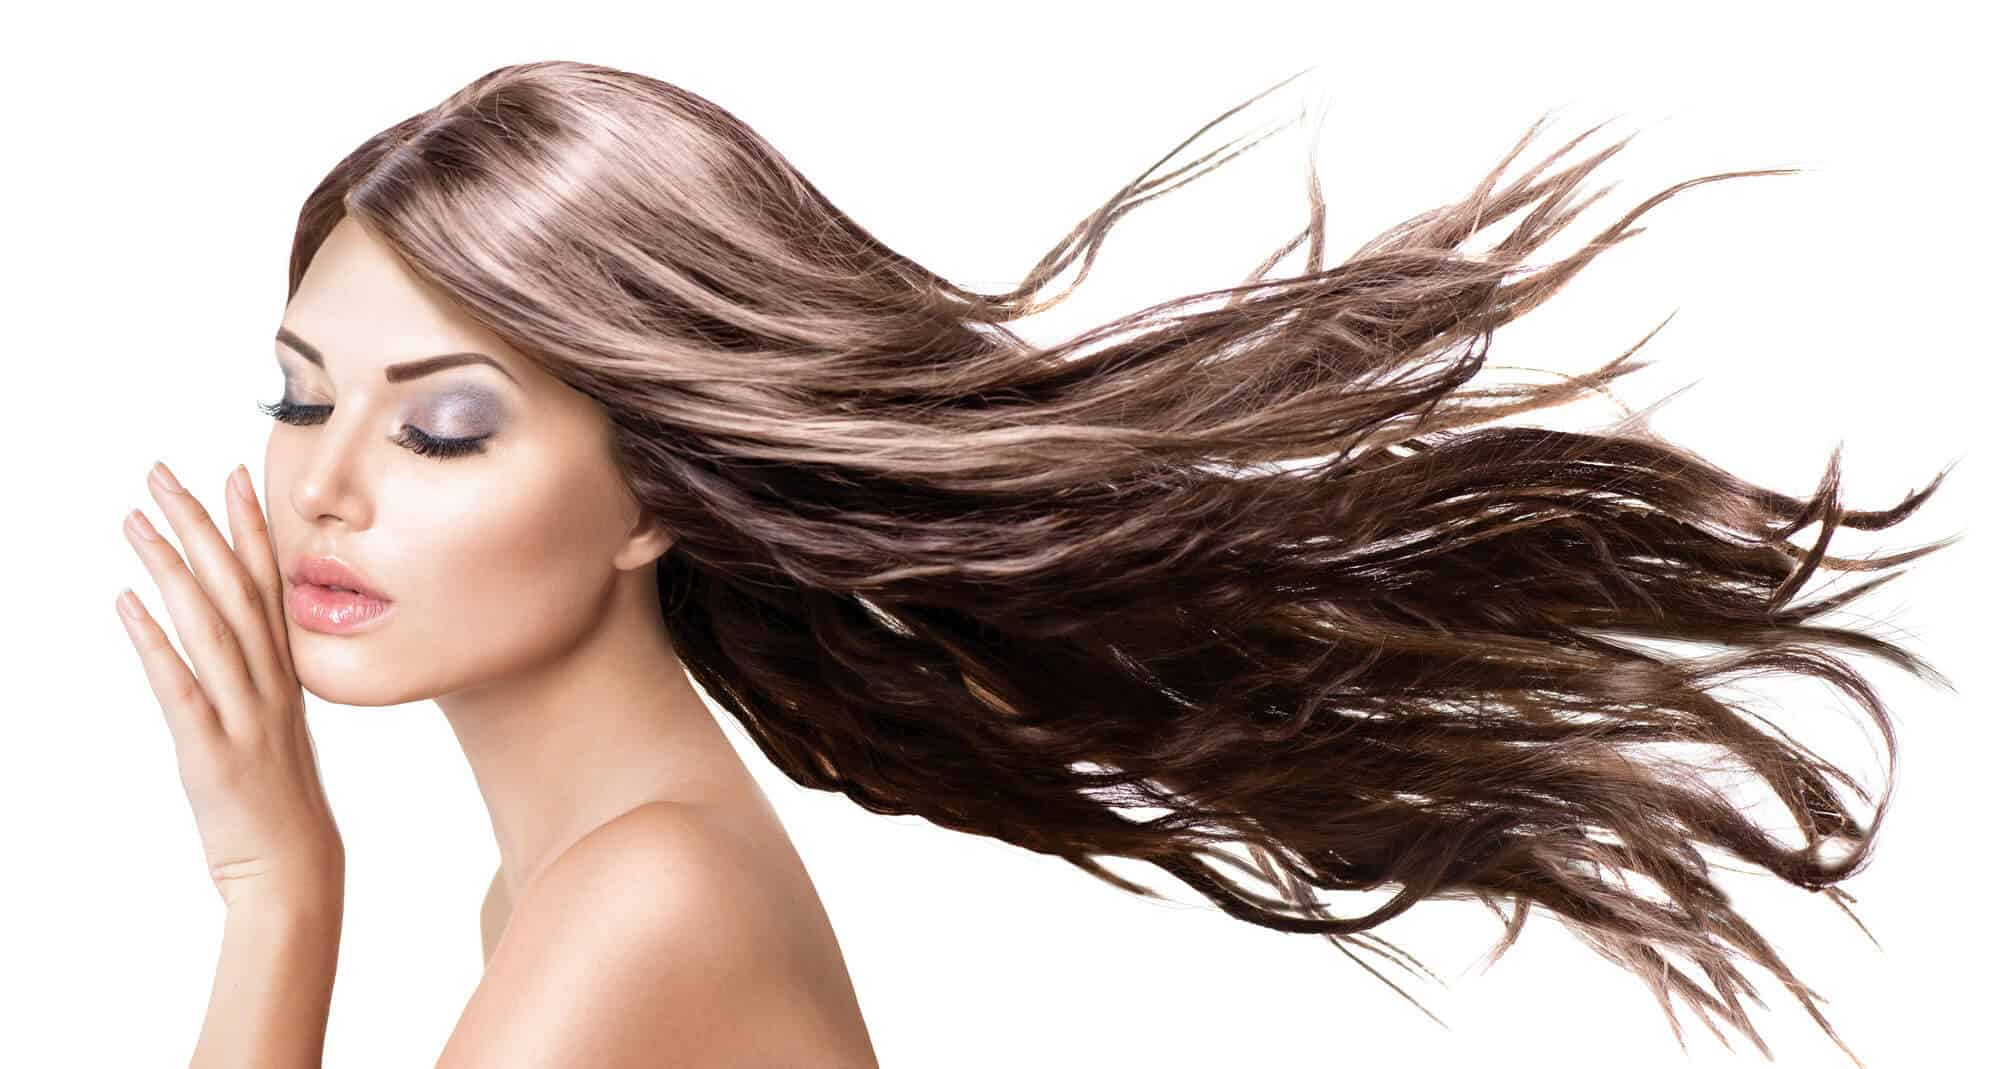 16 of the Best Essential Oils for Hair